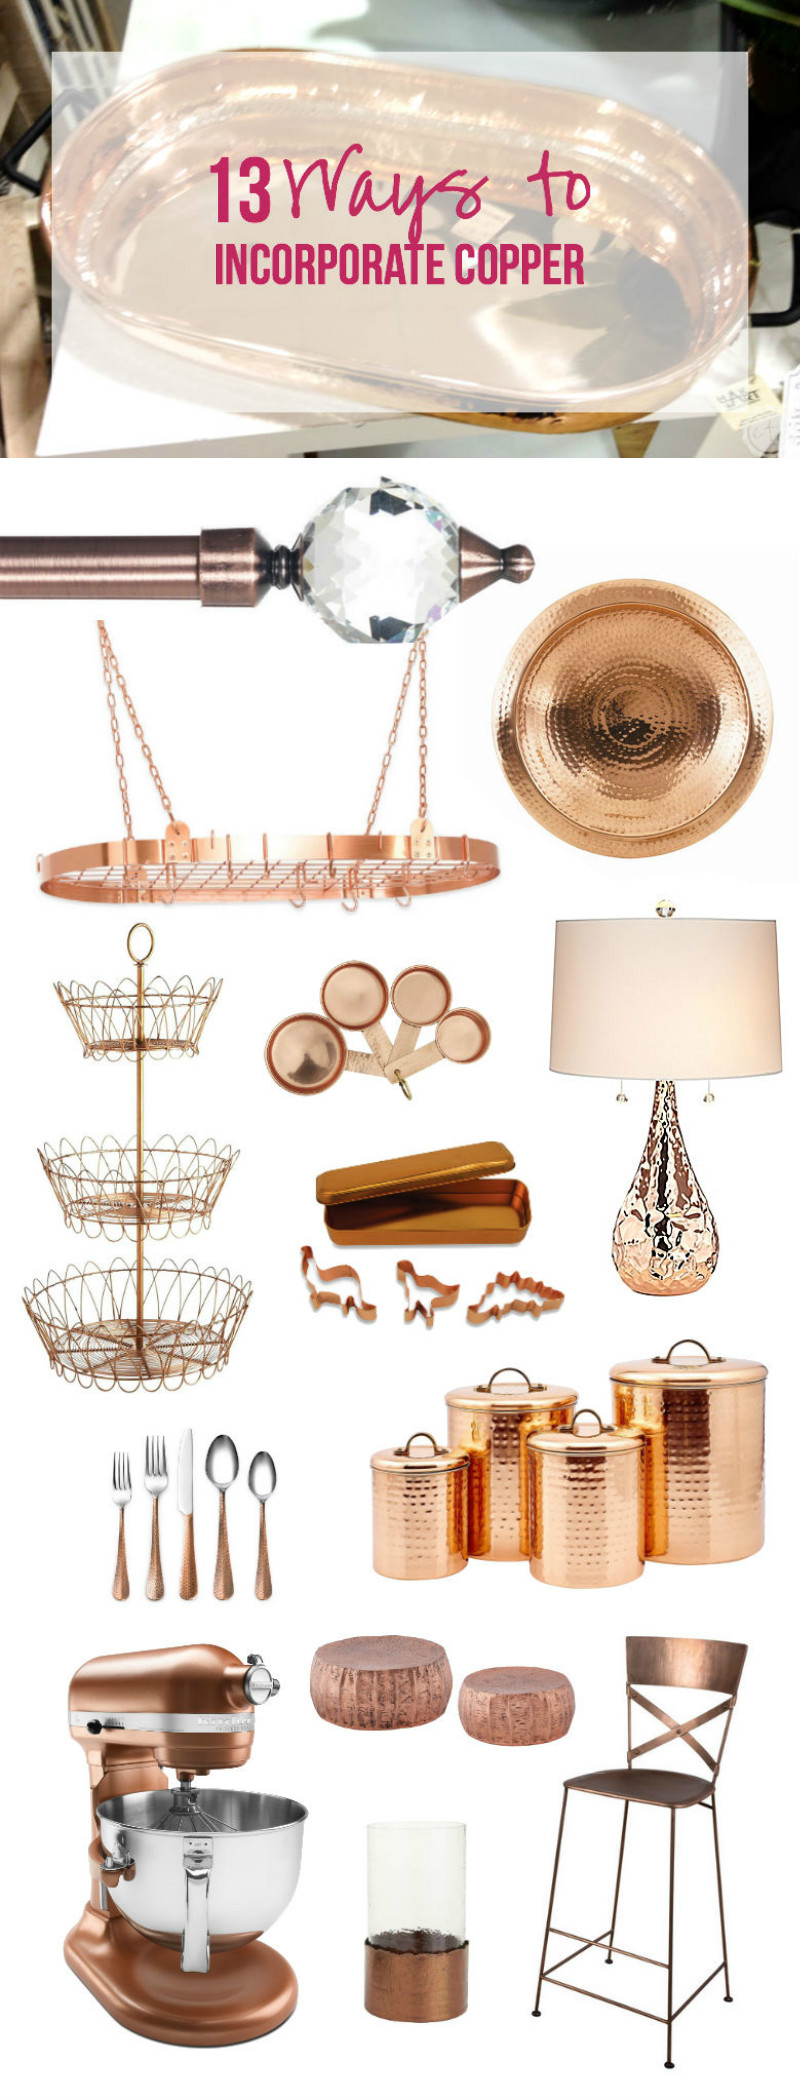 13 Ways to Incorporate Copper with Happily Ever After, Etc.